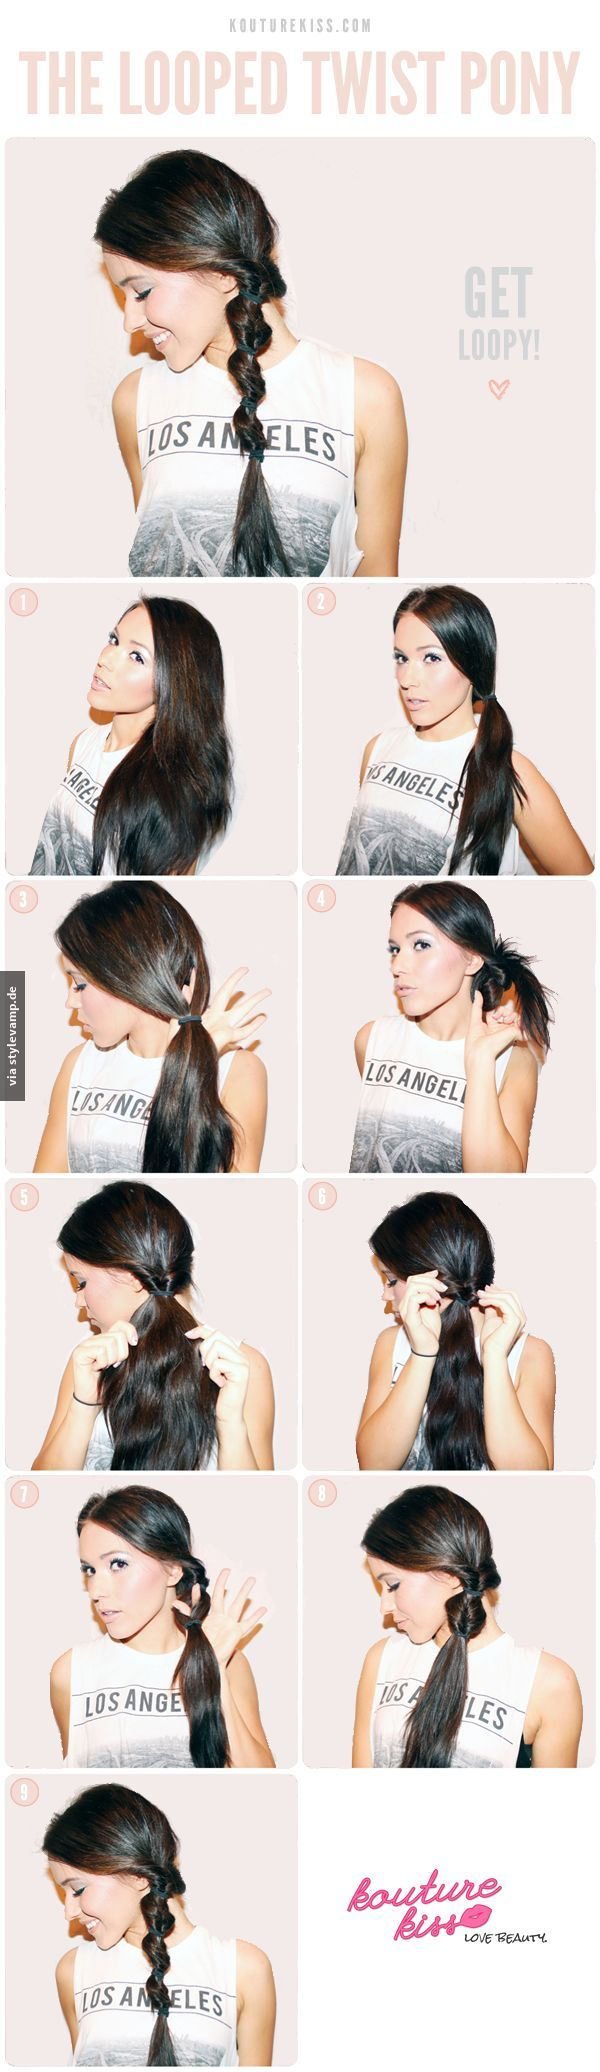 best hair images on pinterest hair colors balayage hair and